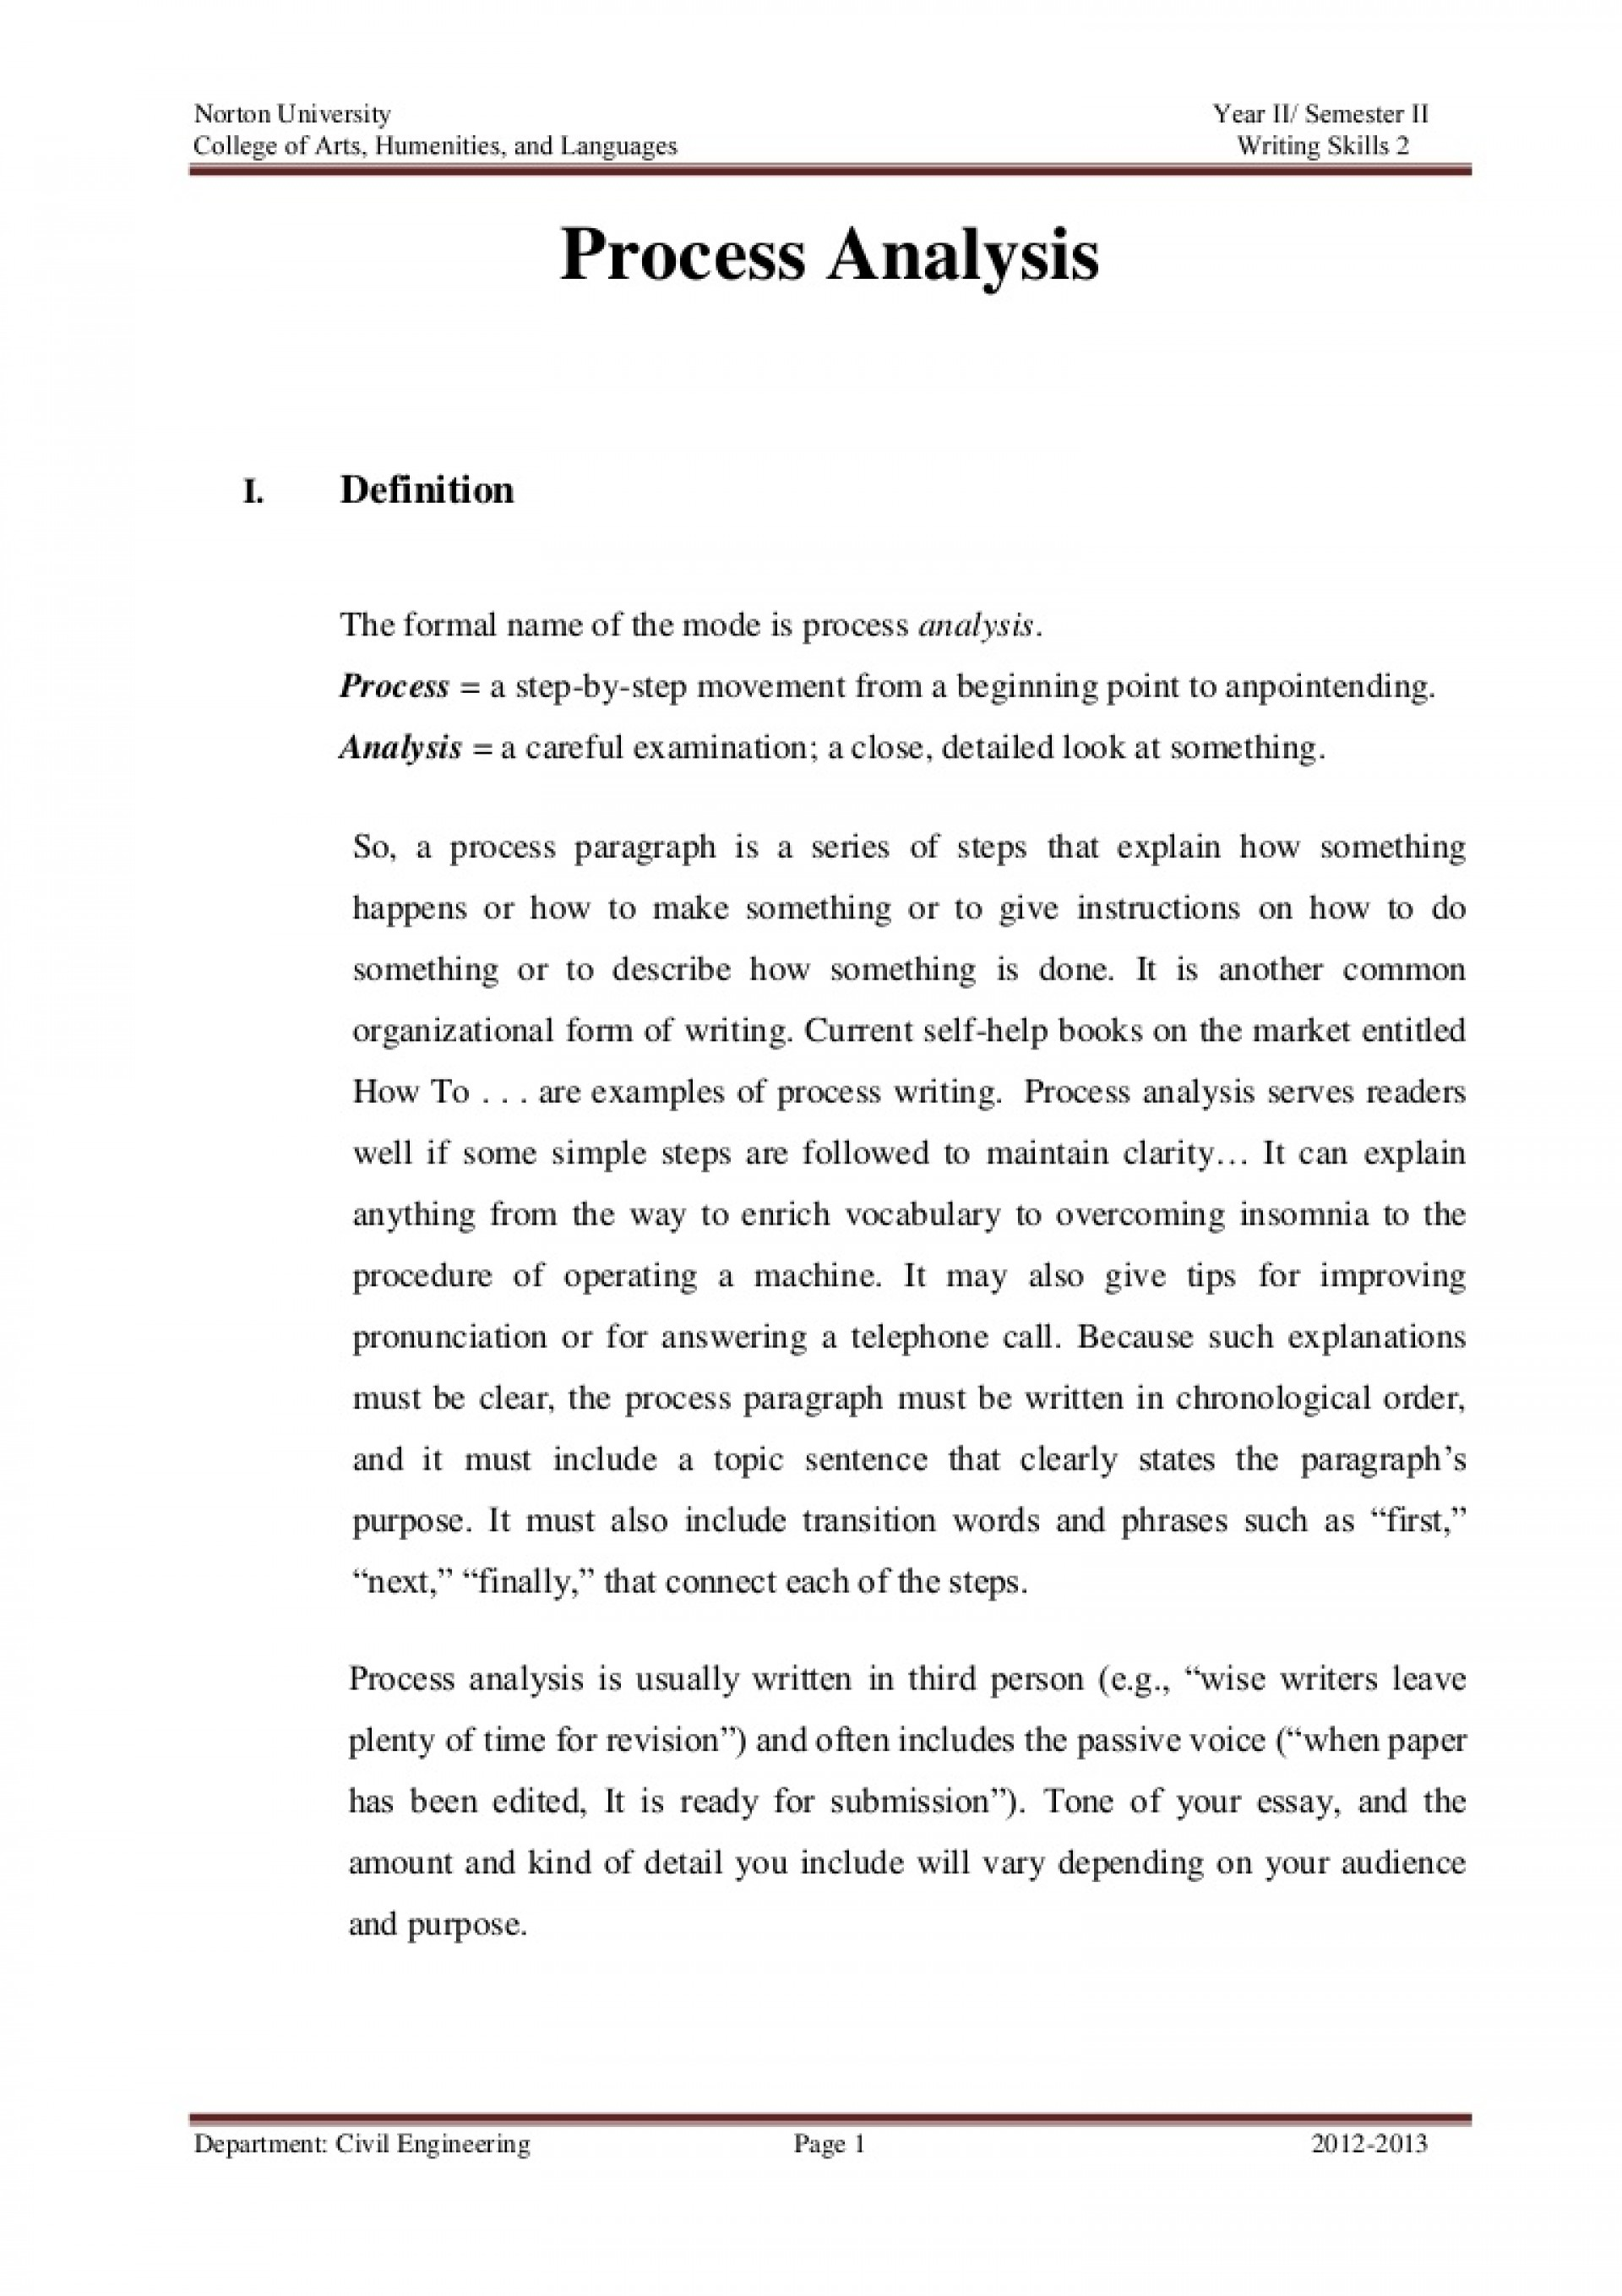 002 Essay Exampleanalysisparagraph Phpapp01 Thumbnail How To Write Top A Process Ielts Thesis Statement For Analysis 1920